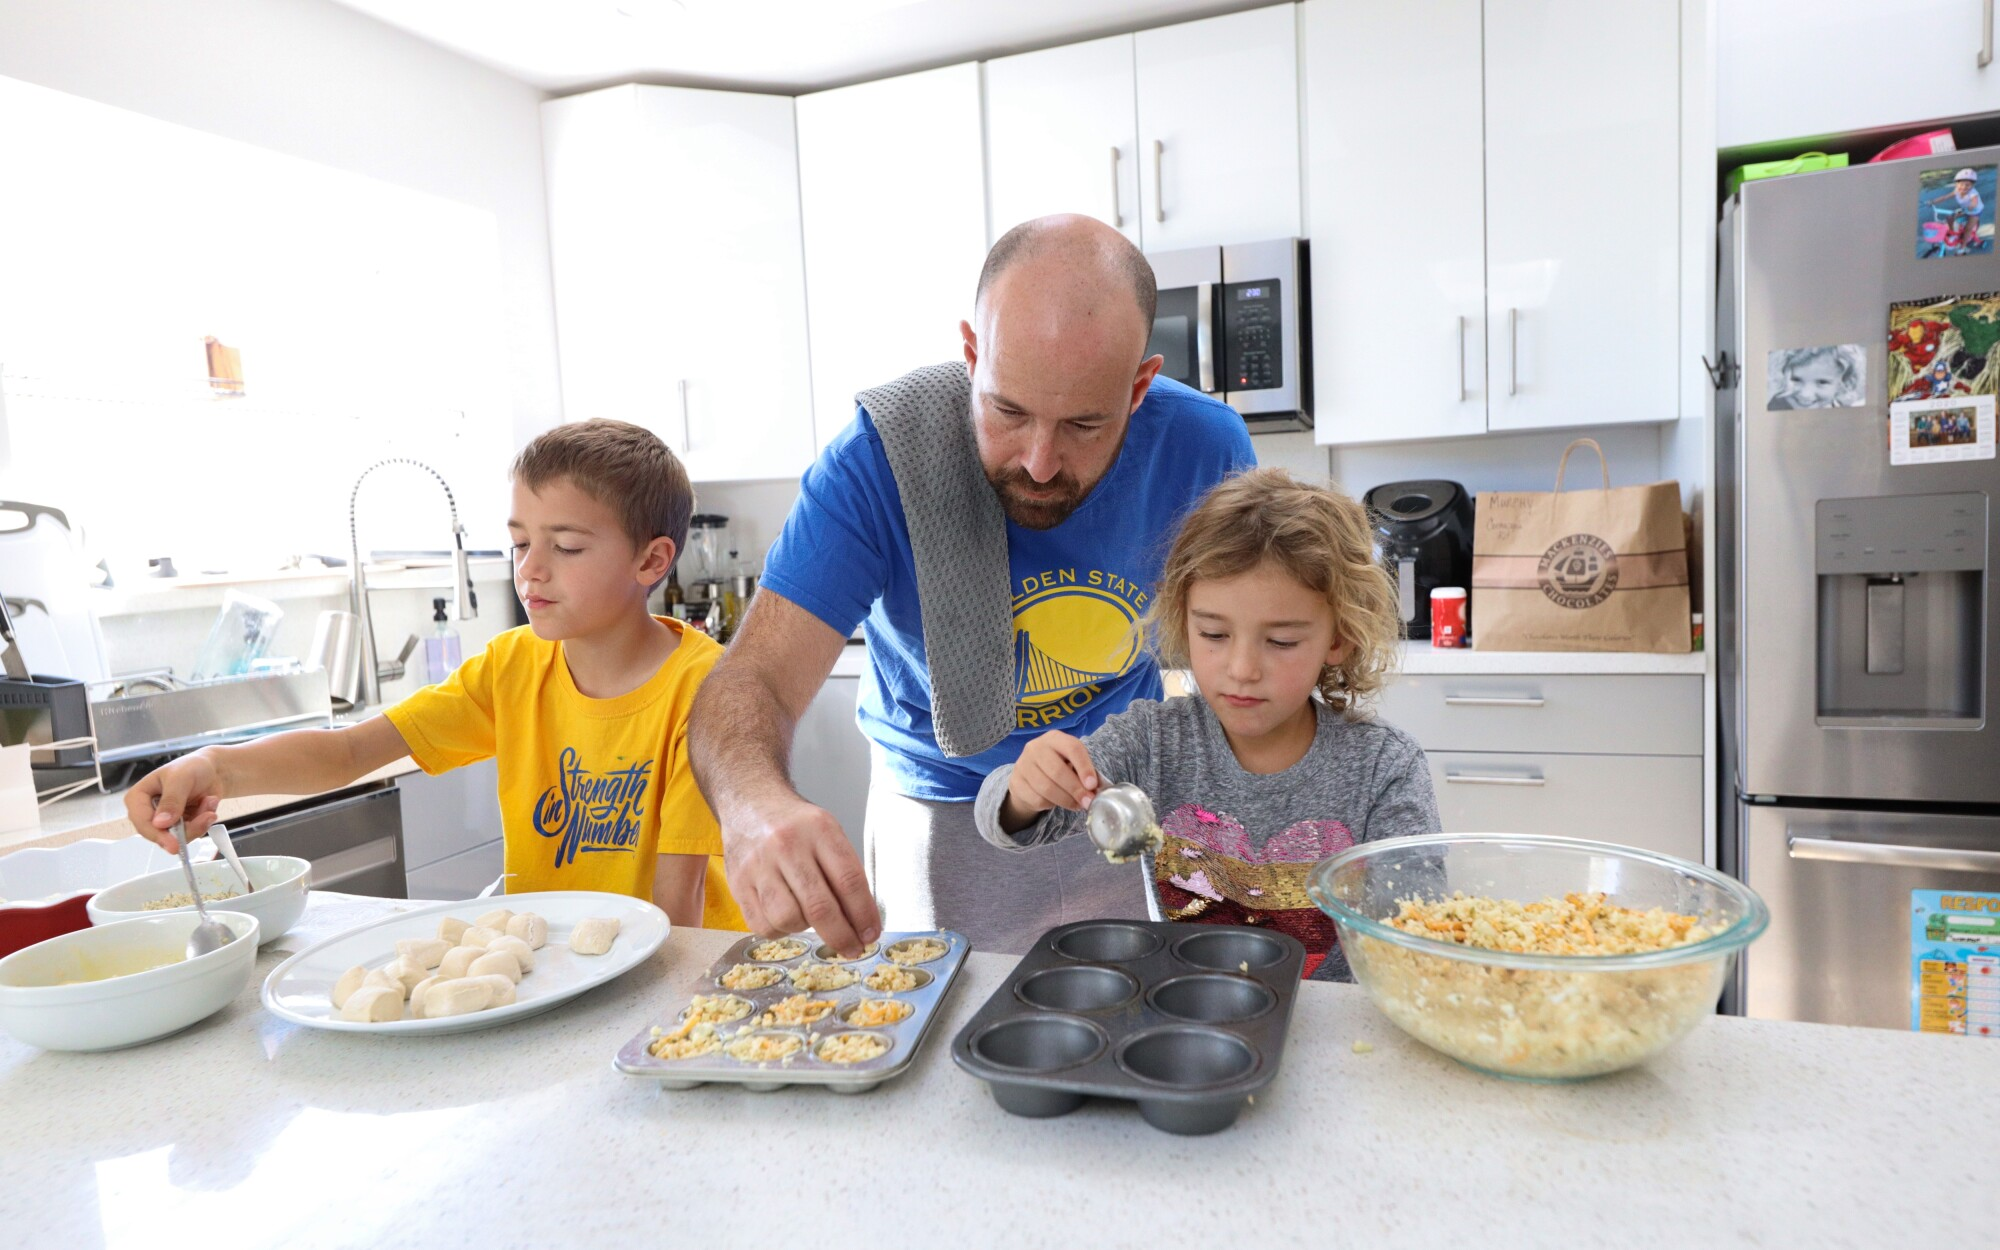 Santa Cruz Warriors President Chris Murphy cooks Thanksgiving dinner with his son Connor, 6, and daughter Taylor, 4.